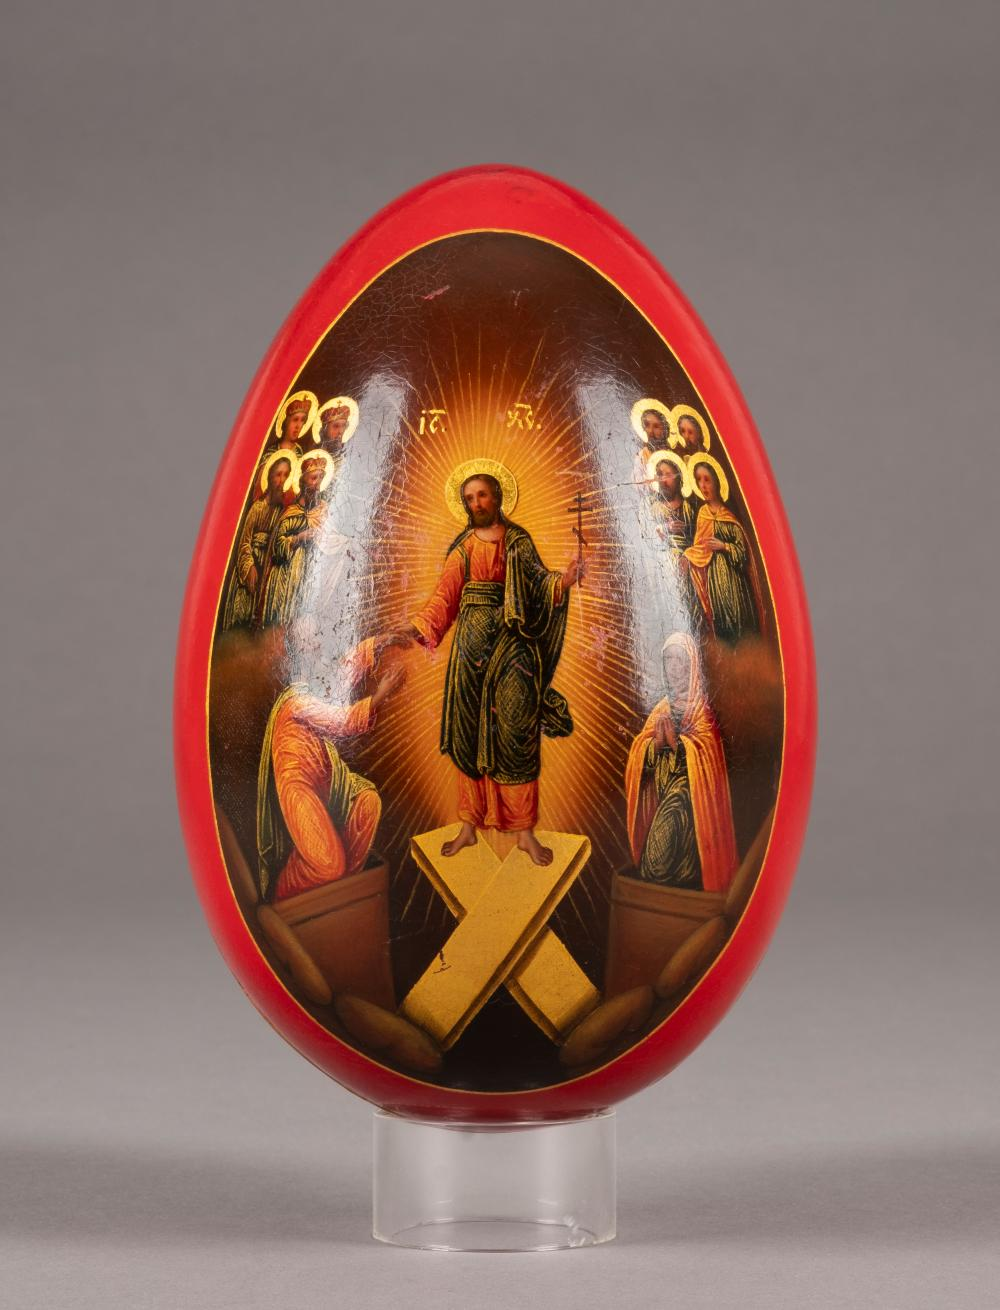 A LARGE PAPIER-MACHÉ AND LACQUER EASTER EGG SHOWING THE DES